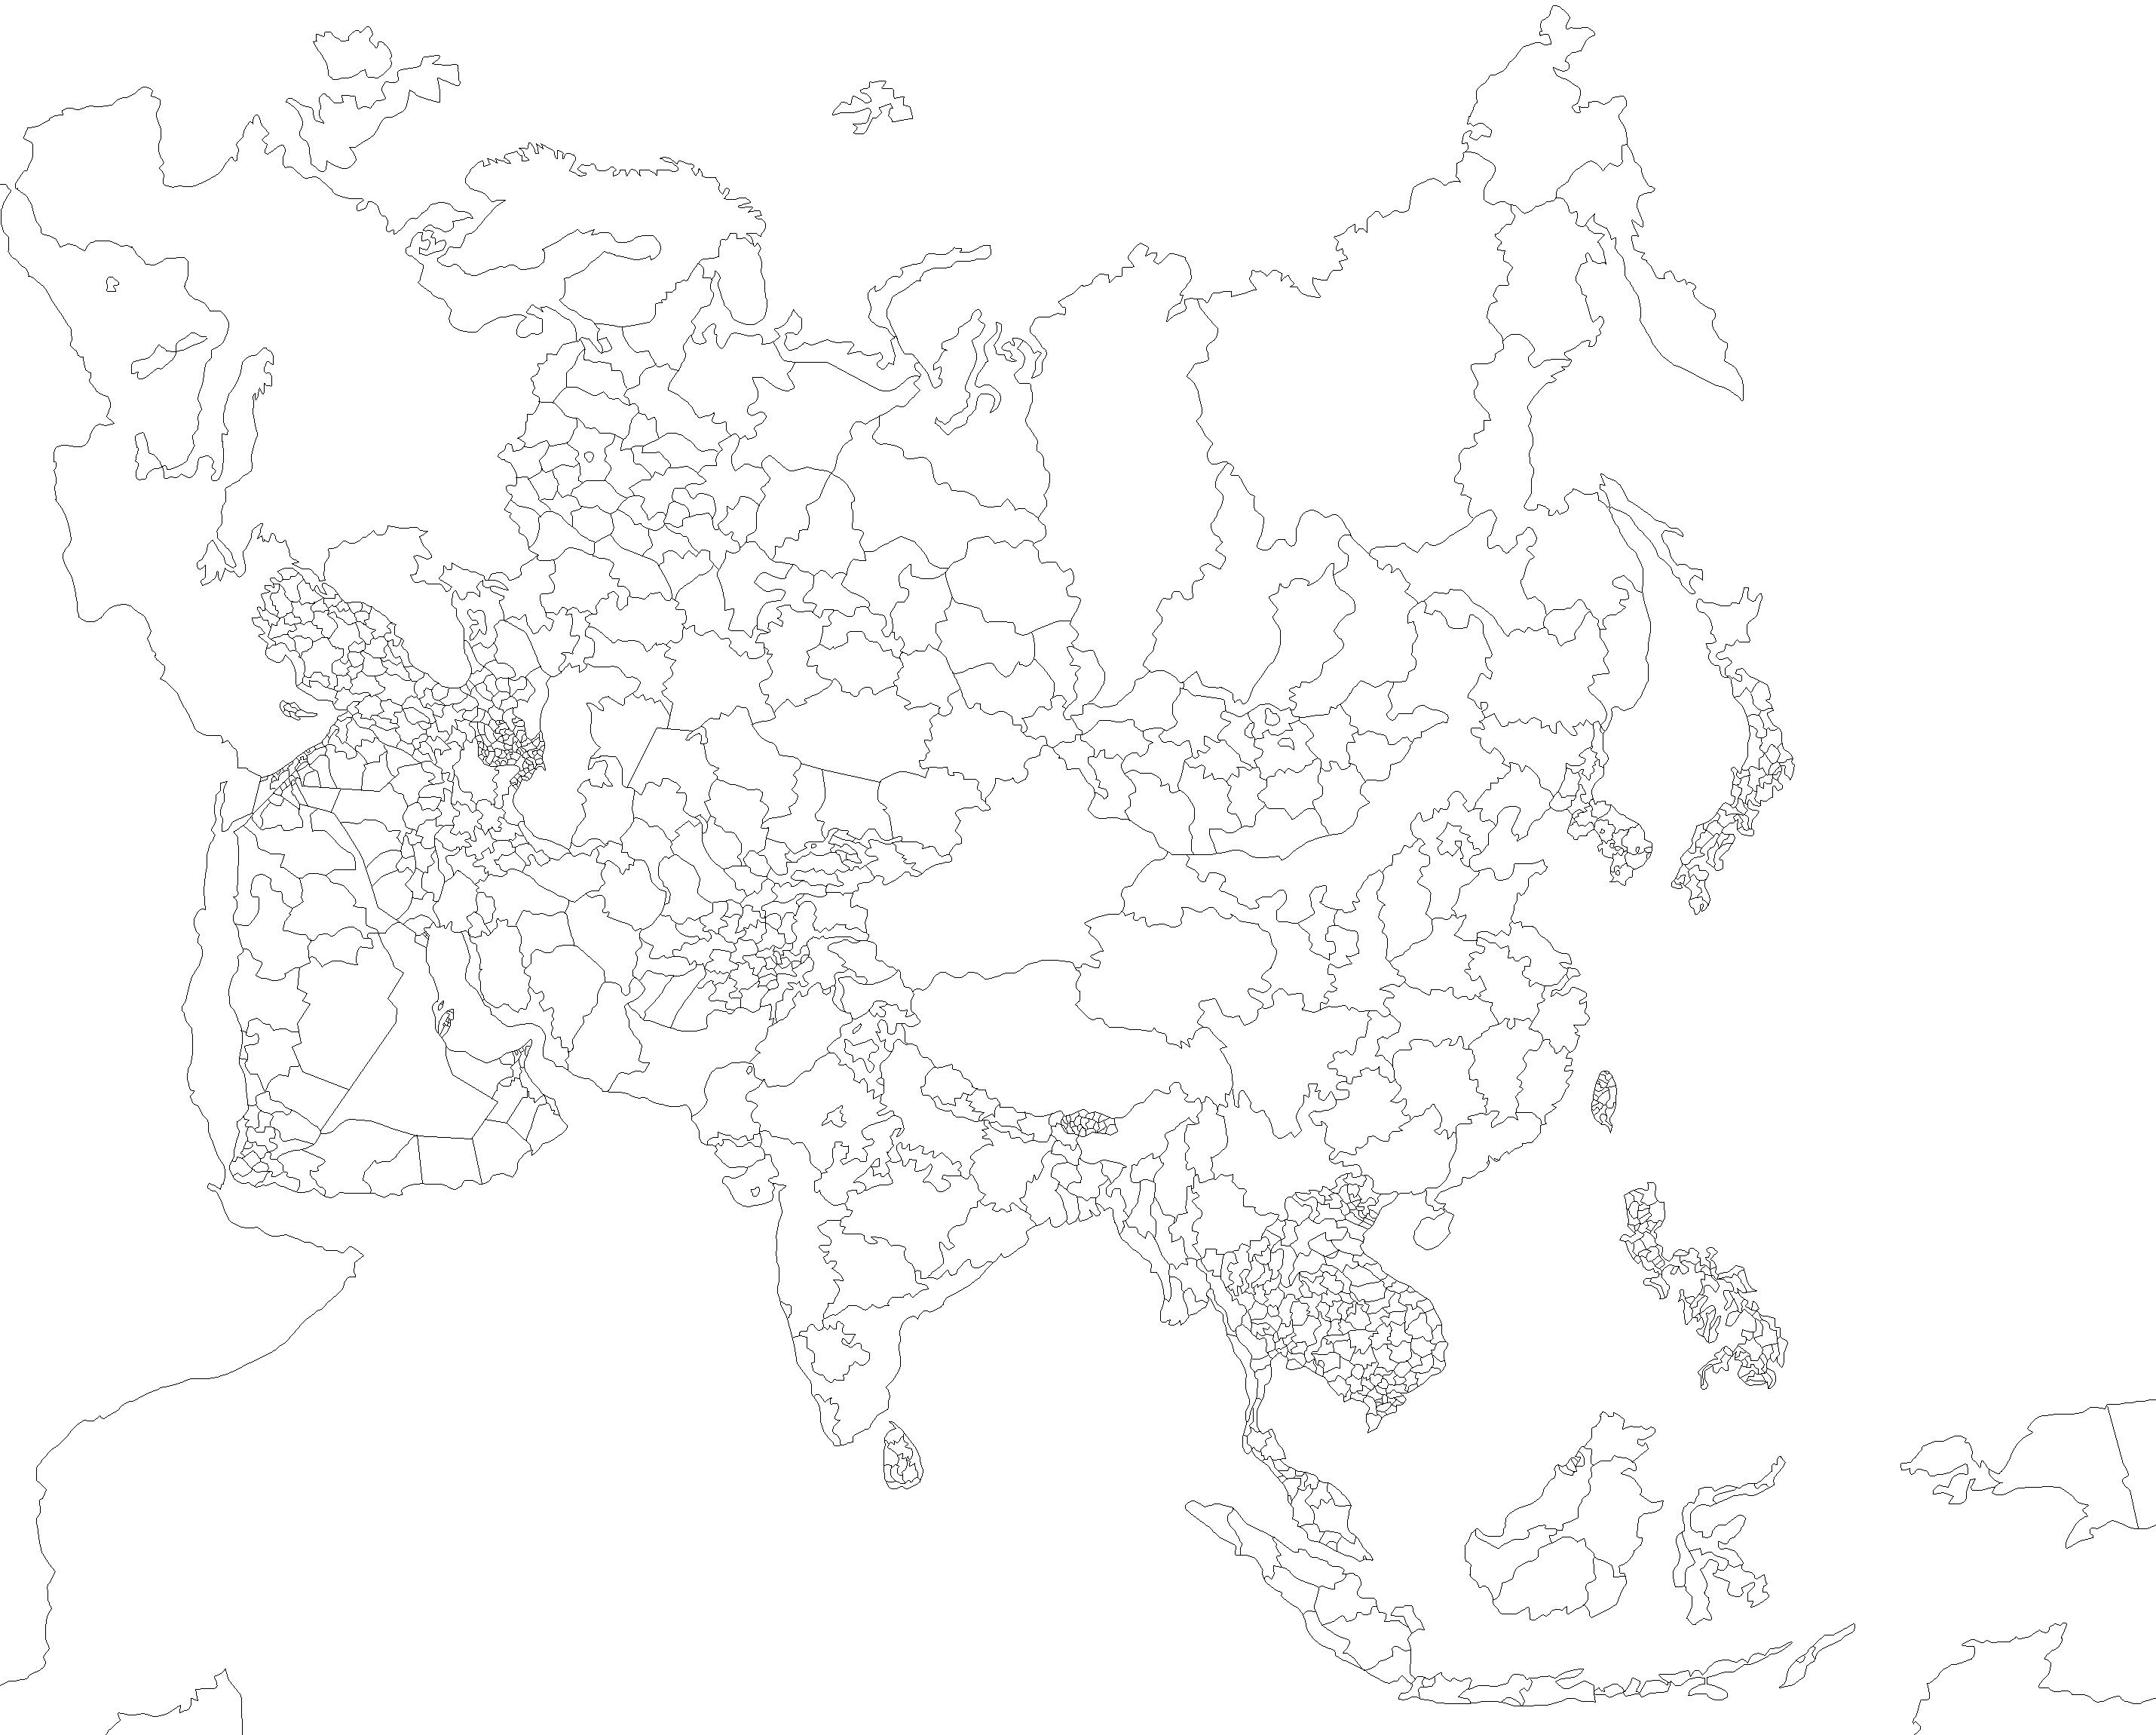 Free Blank Maps Template Maps For Coloring Free To Download And Use - Blank map of asia